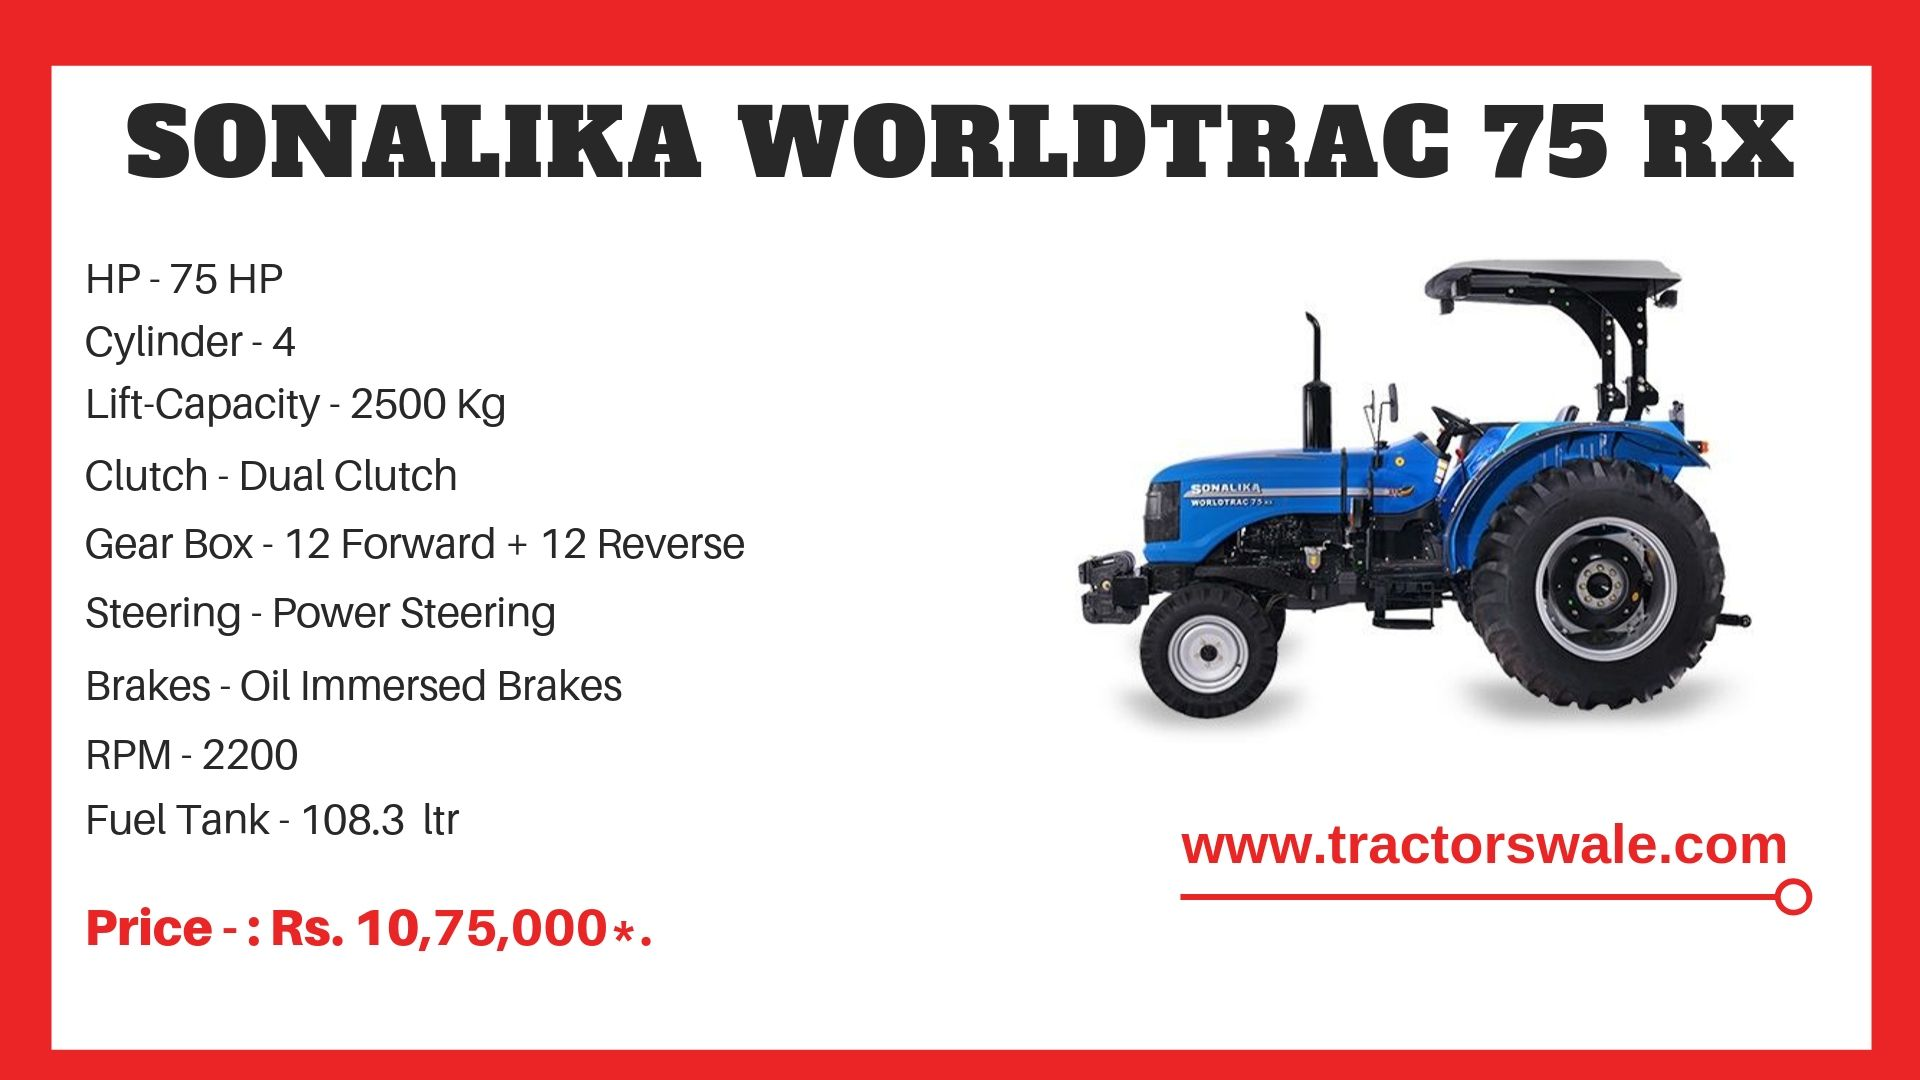 Sonalika Worldtrack 75 RX tractor specifications